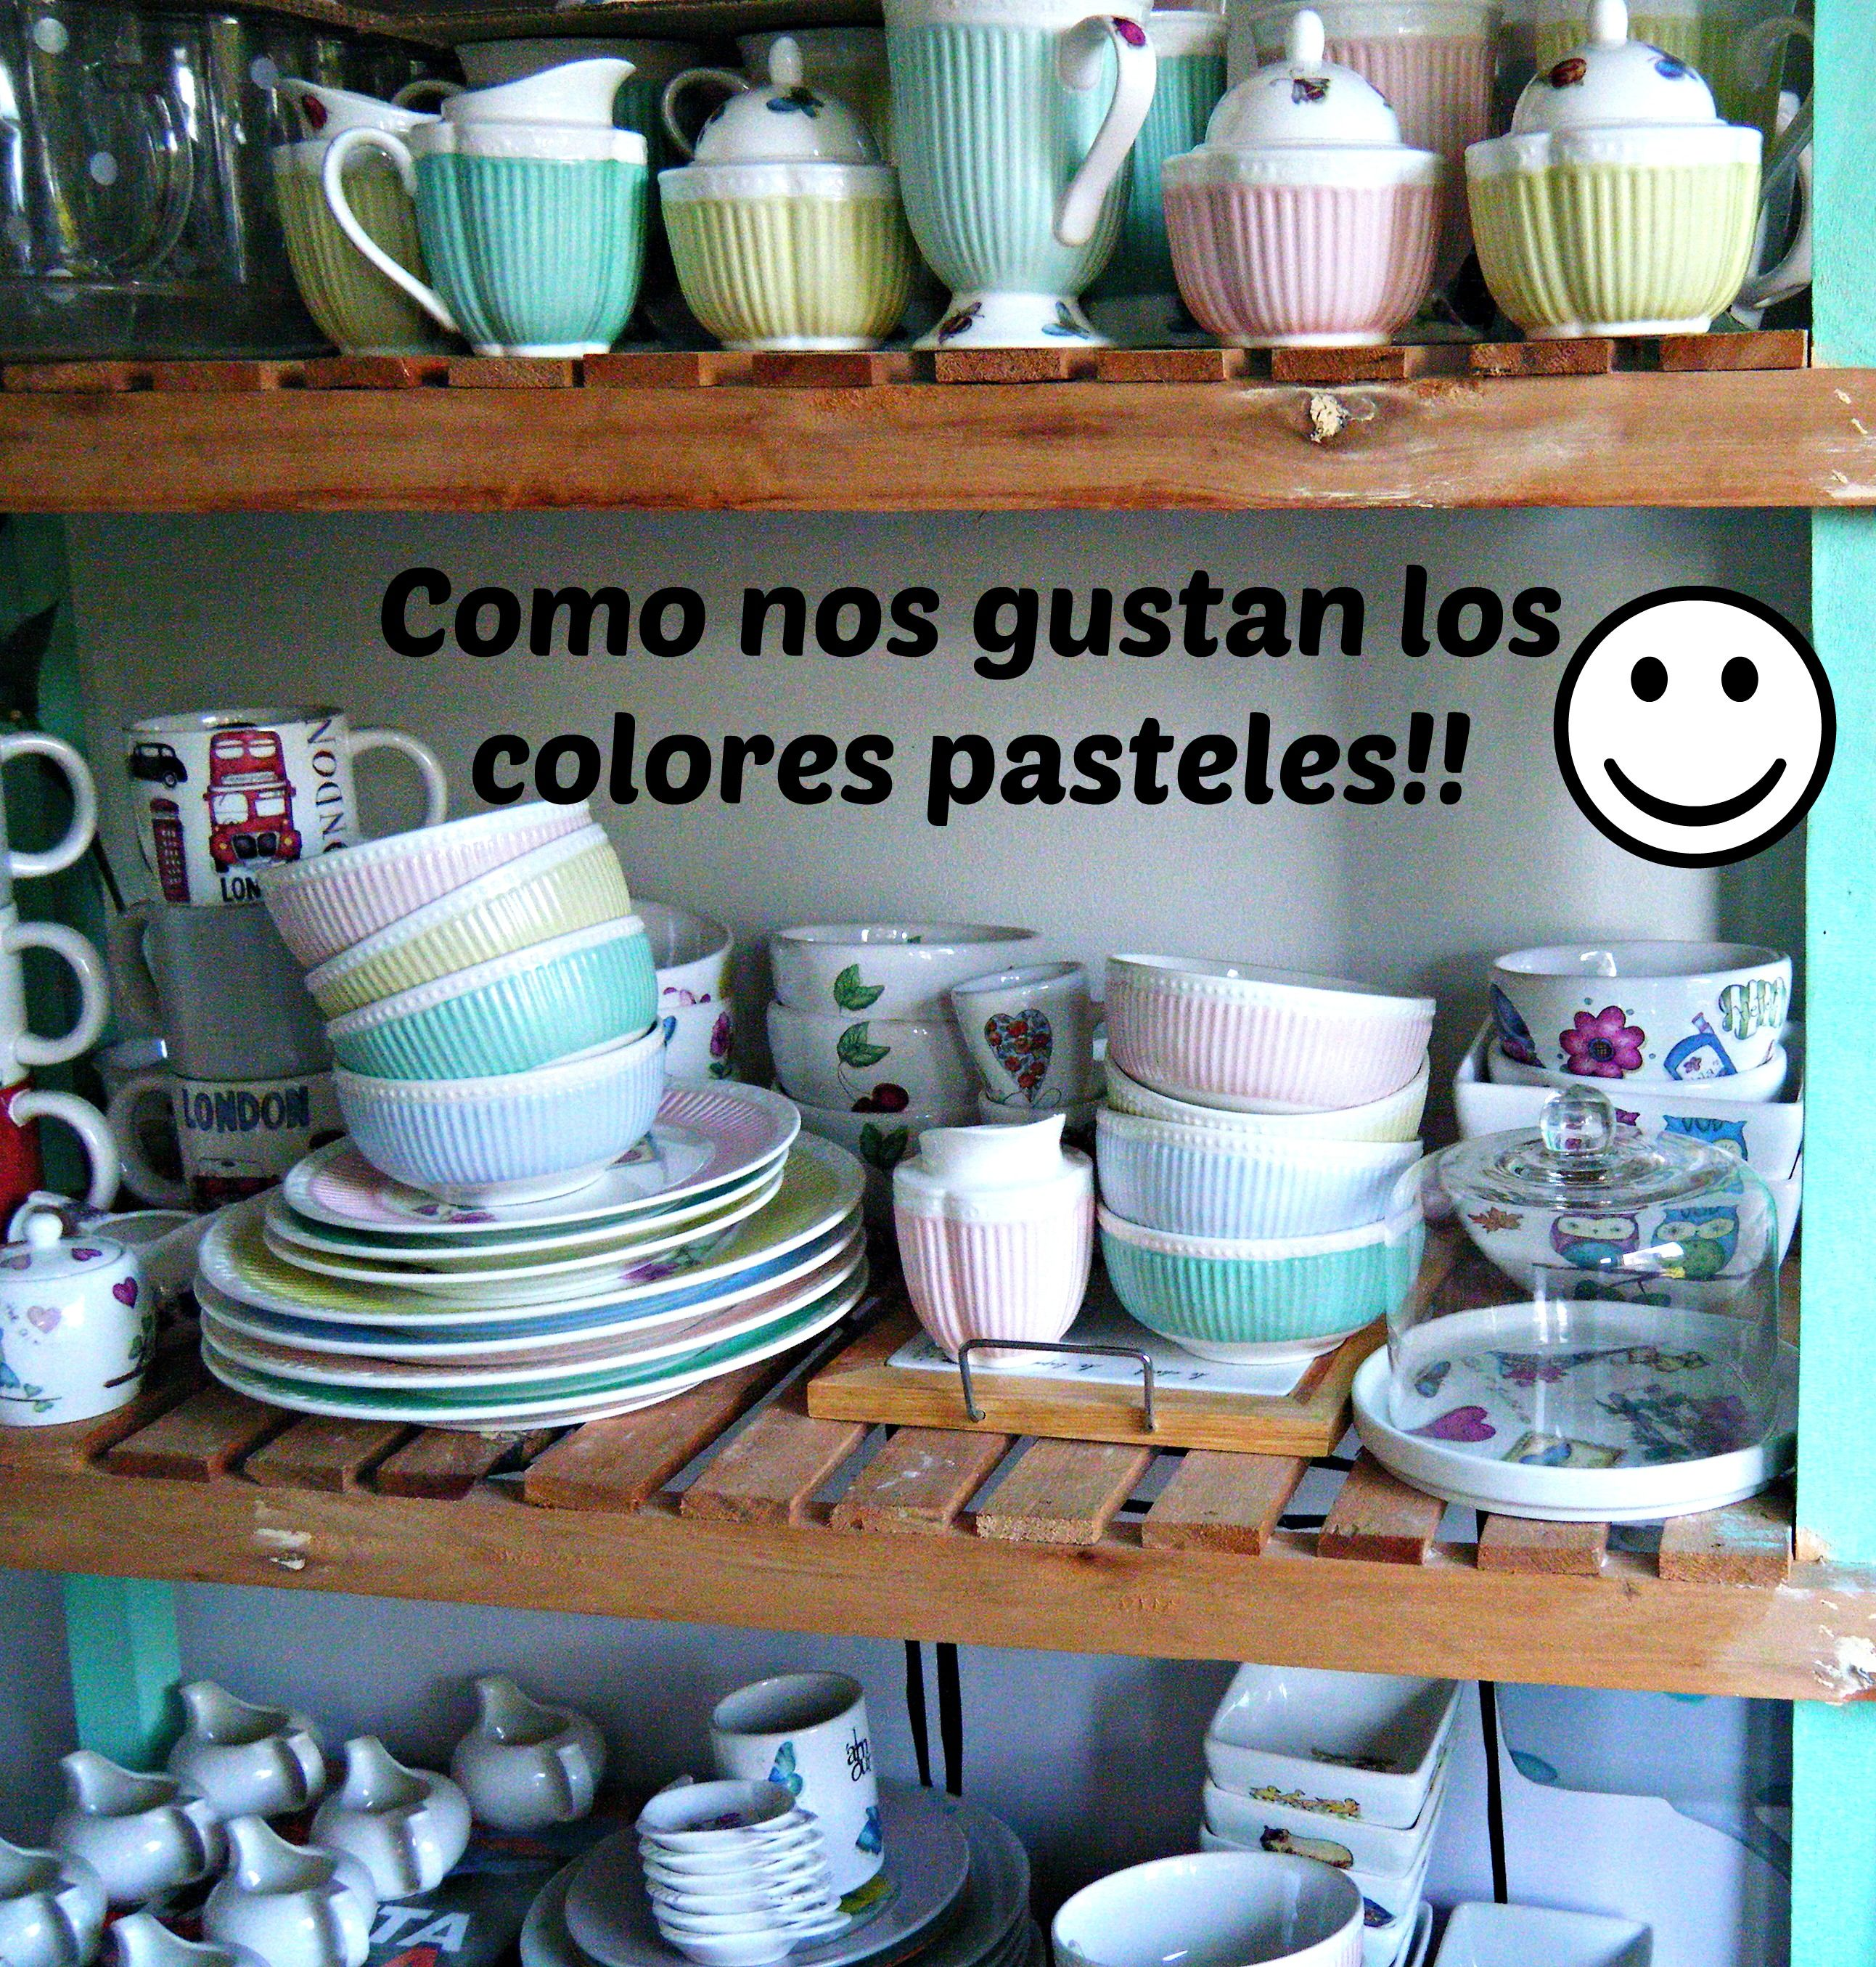 Nos encantan los colores pasteles!!  Art Home Designs / Art Home Market / What a wonderful home / Vajilla divertida